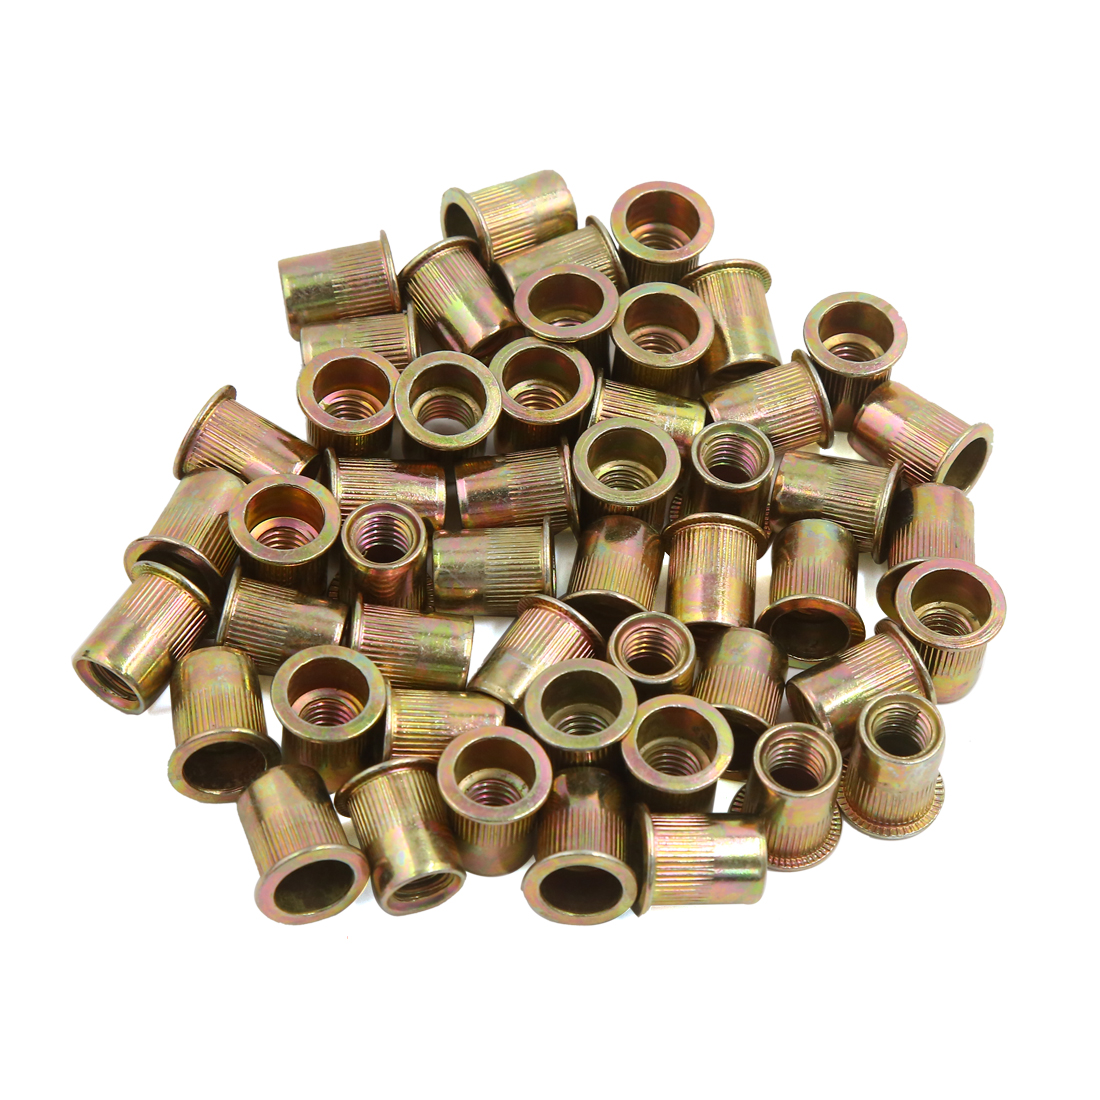 50Pcs 3/8-16 Bronze Tone Stainless Steel Thread Rivet Nut Insert Nutserts